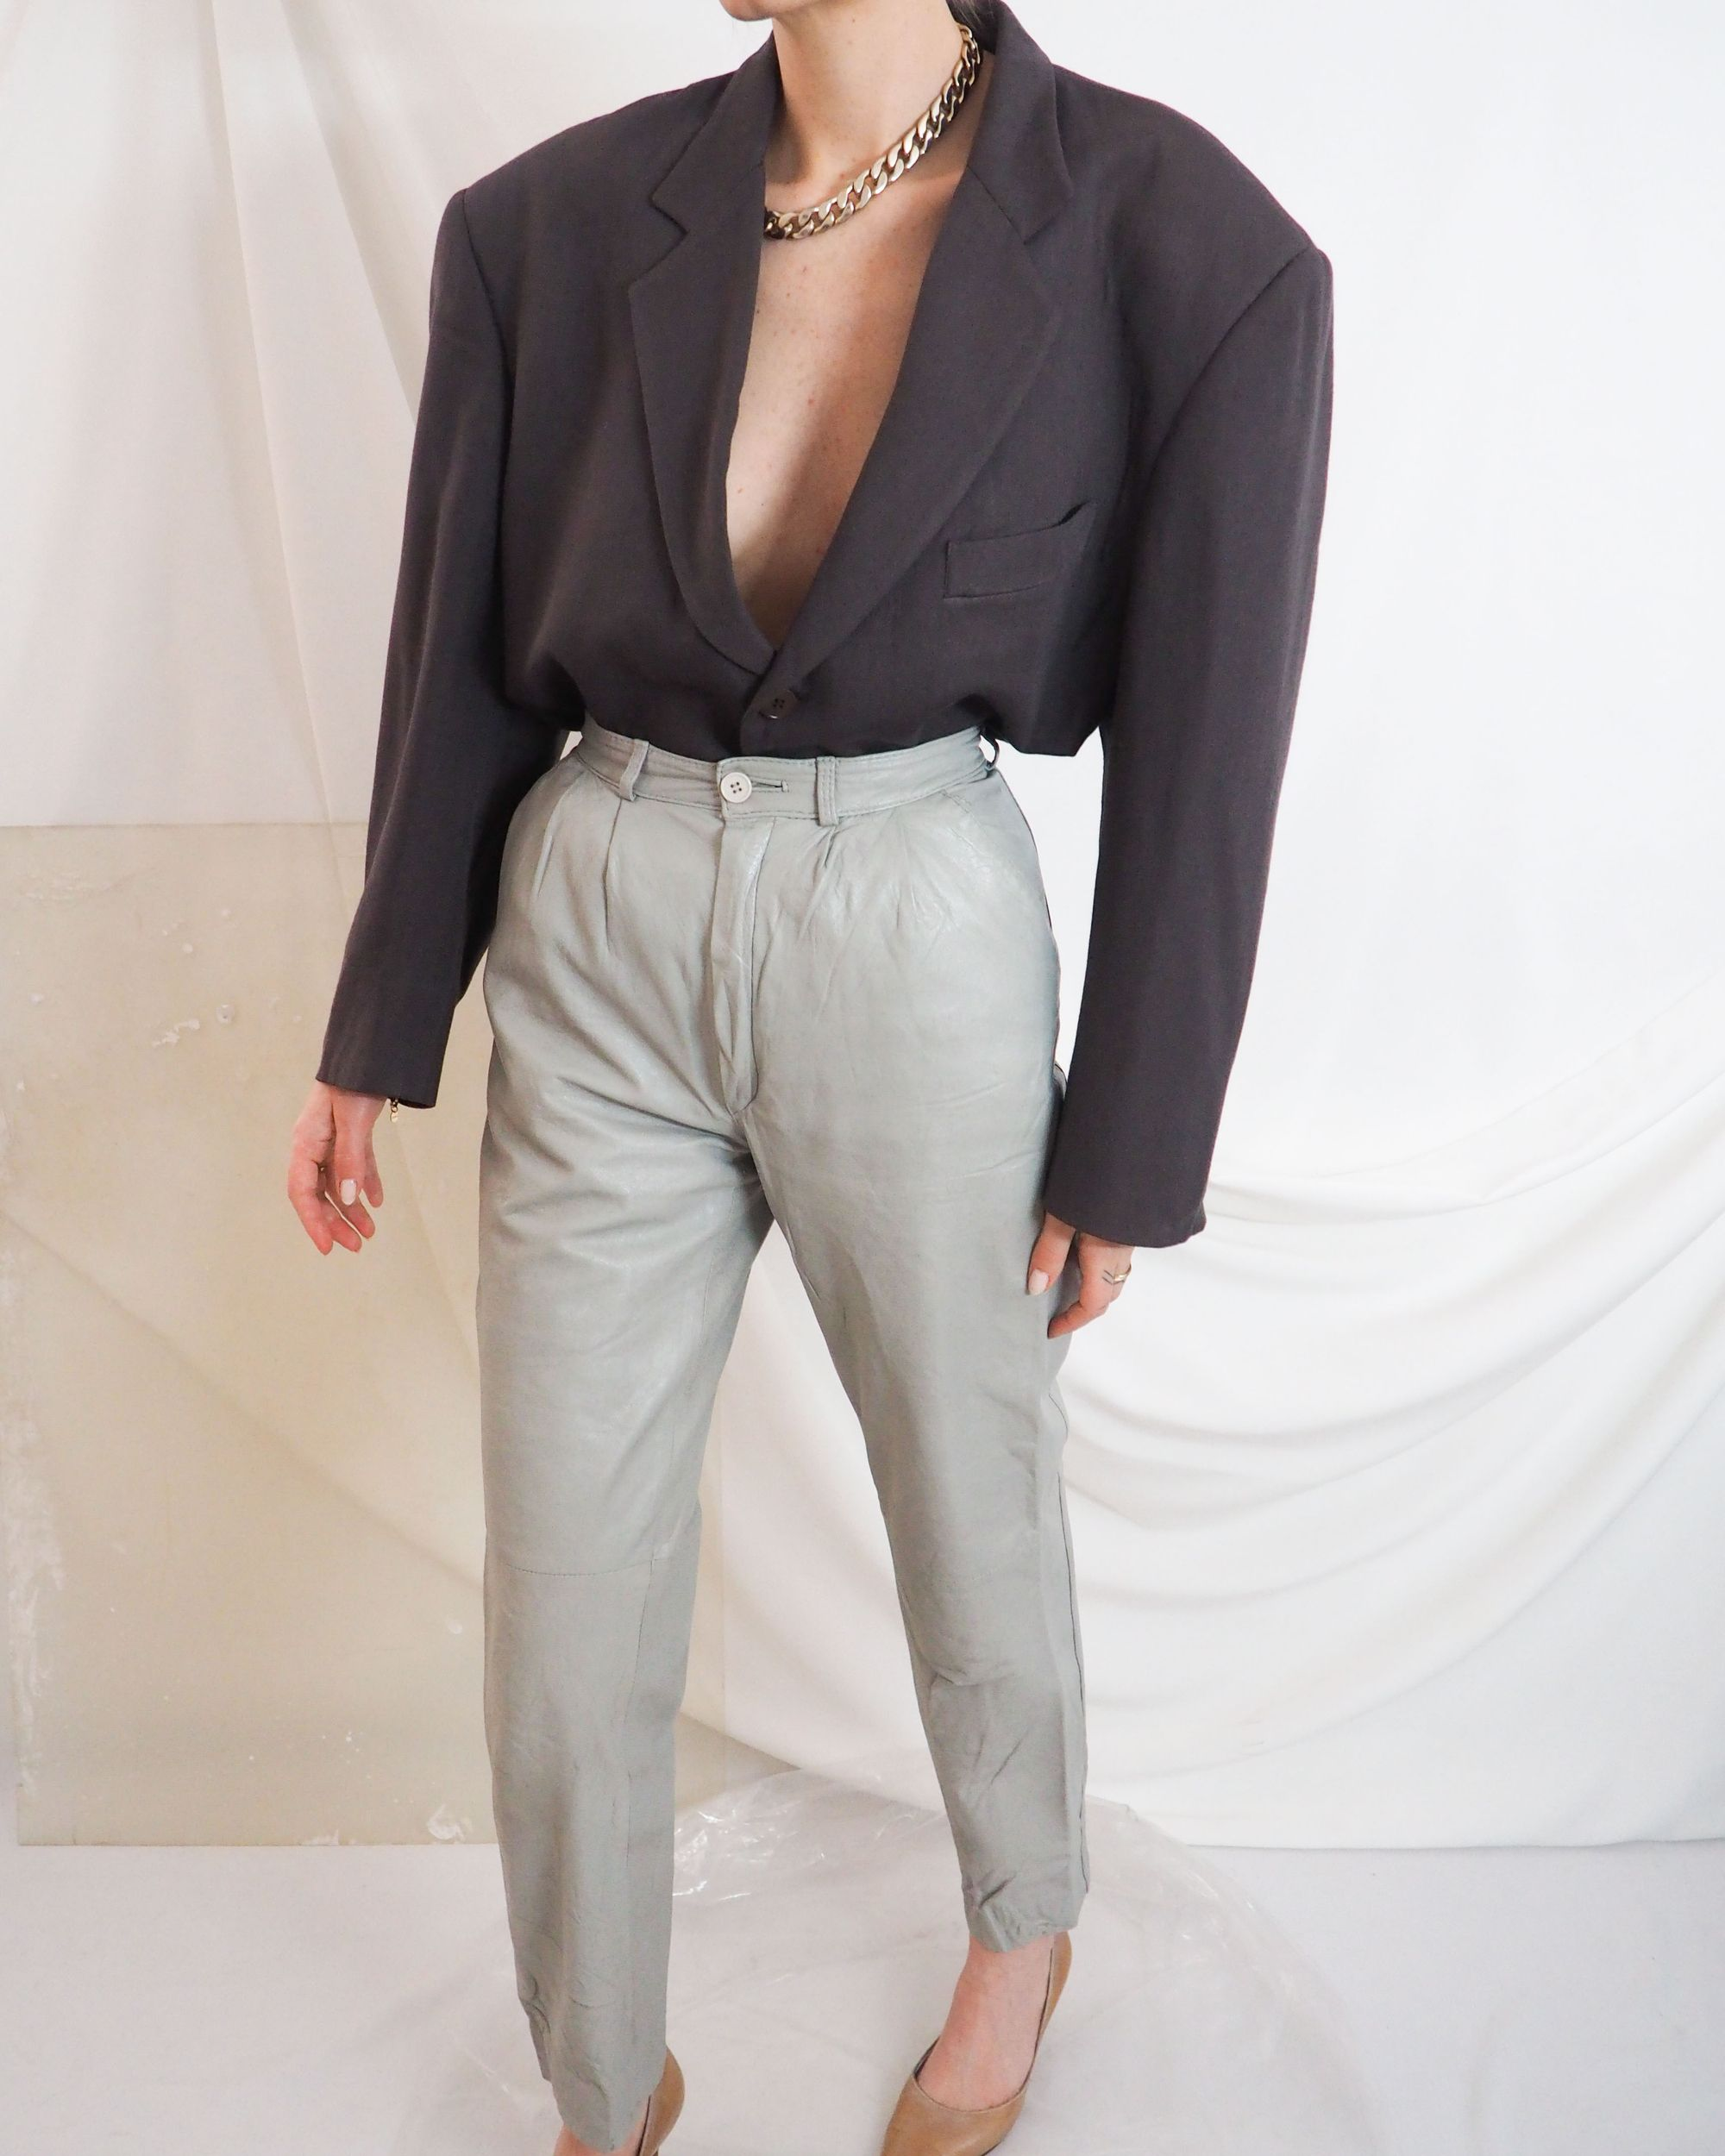 Vintage Leather Pants High Waist In Sage With Brown Blazer Tucked Inside Untitled 1991 In 2020 Vintage Clothing Online Vintage Outfits Online Shopping Clothes